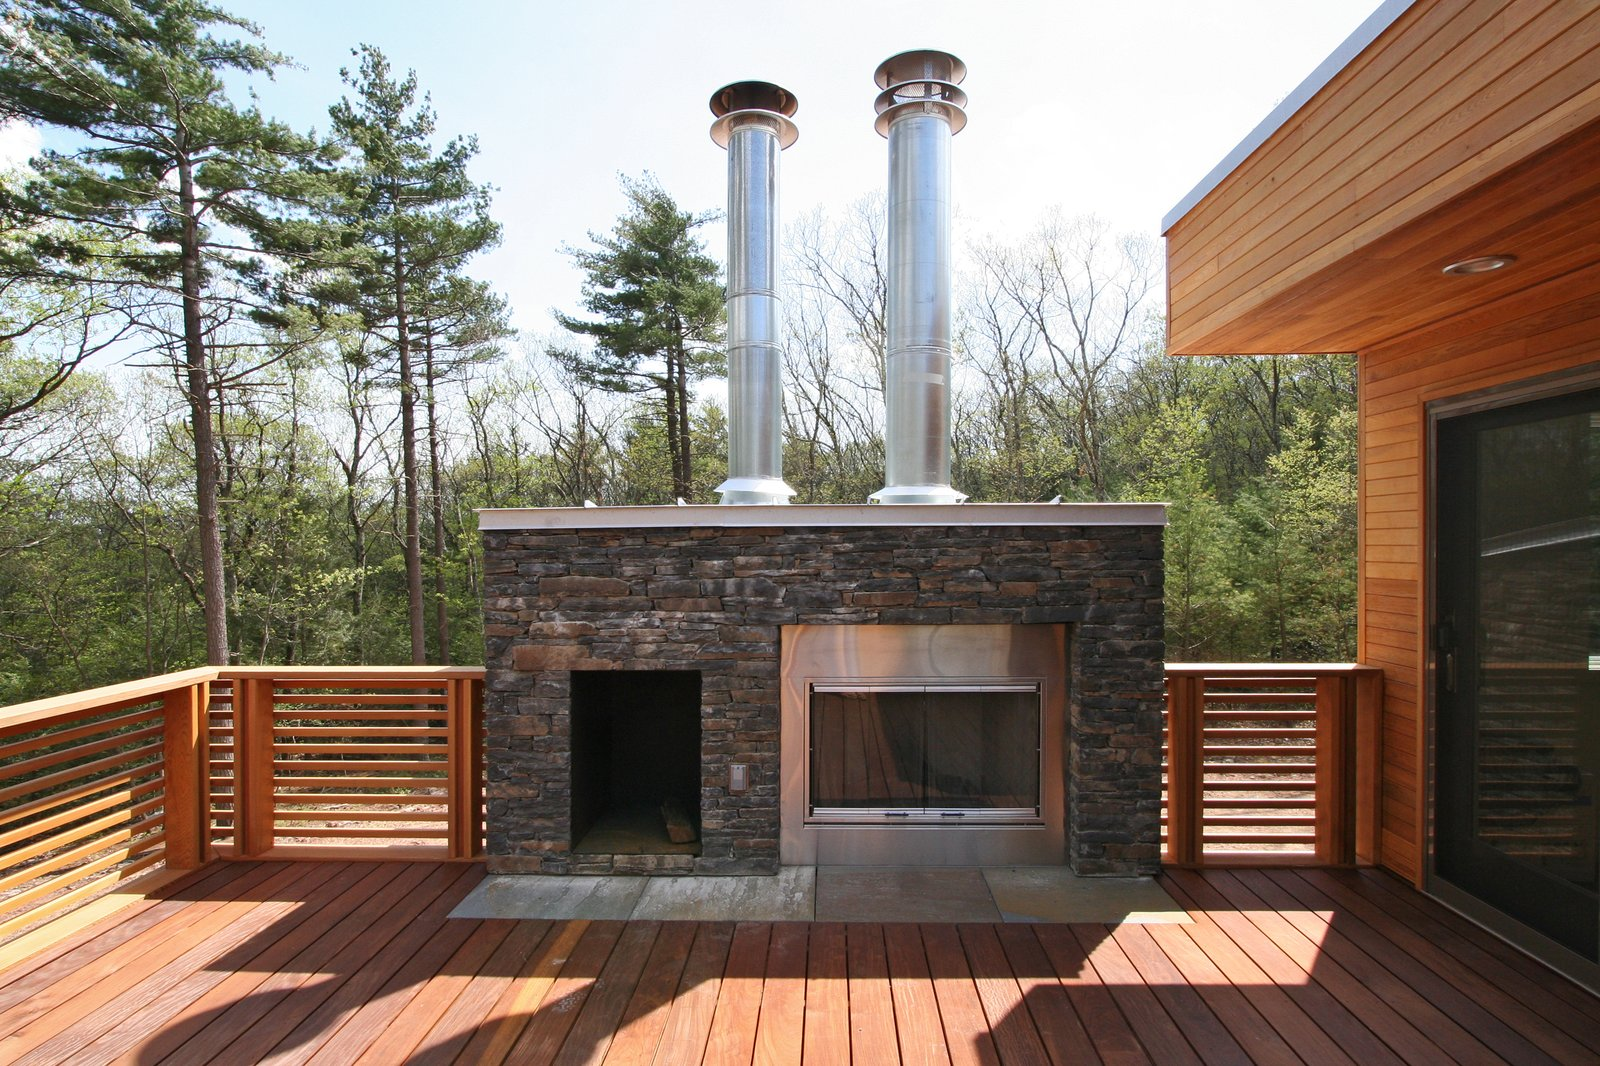 Ipe roof deck with outdoor fireplace and stone surround  Catskills Suburban by Resolution: 4 Architecture